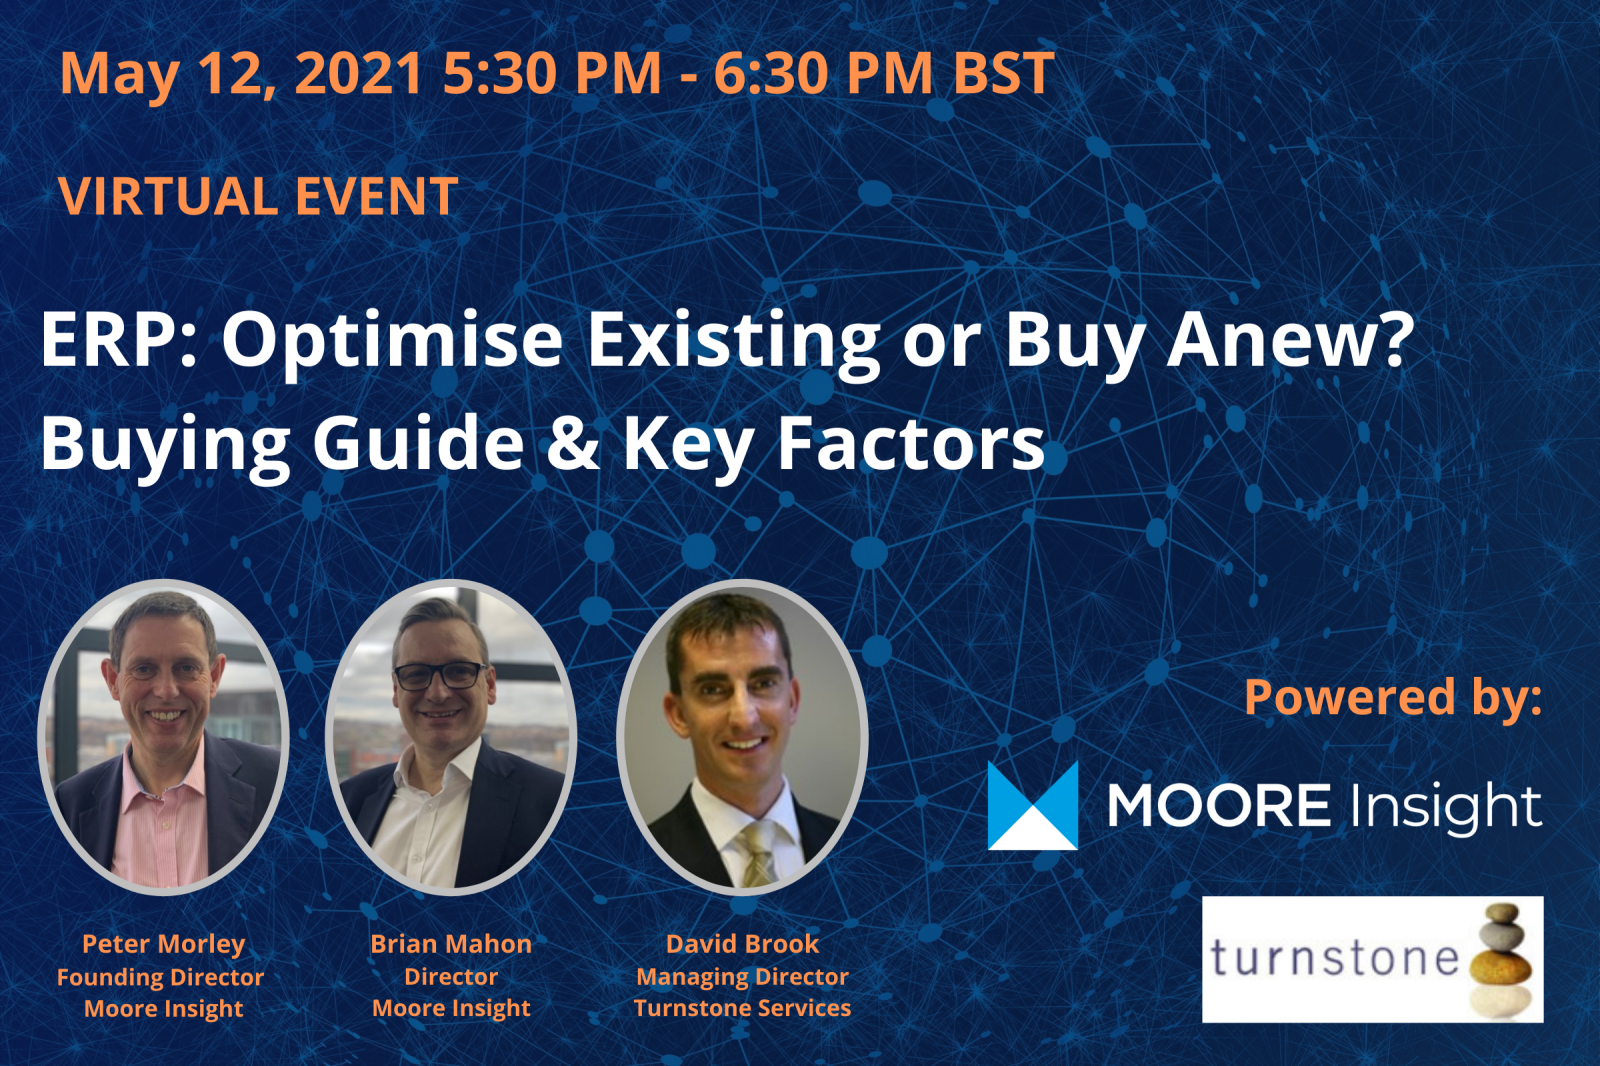 ERP: Optimise Existing or Buy Anew? Buying Guide & Key Factors  - Moore Insight header image